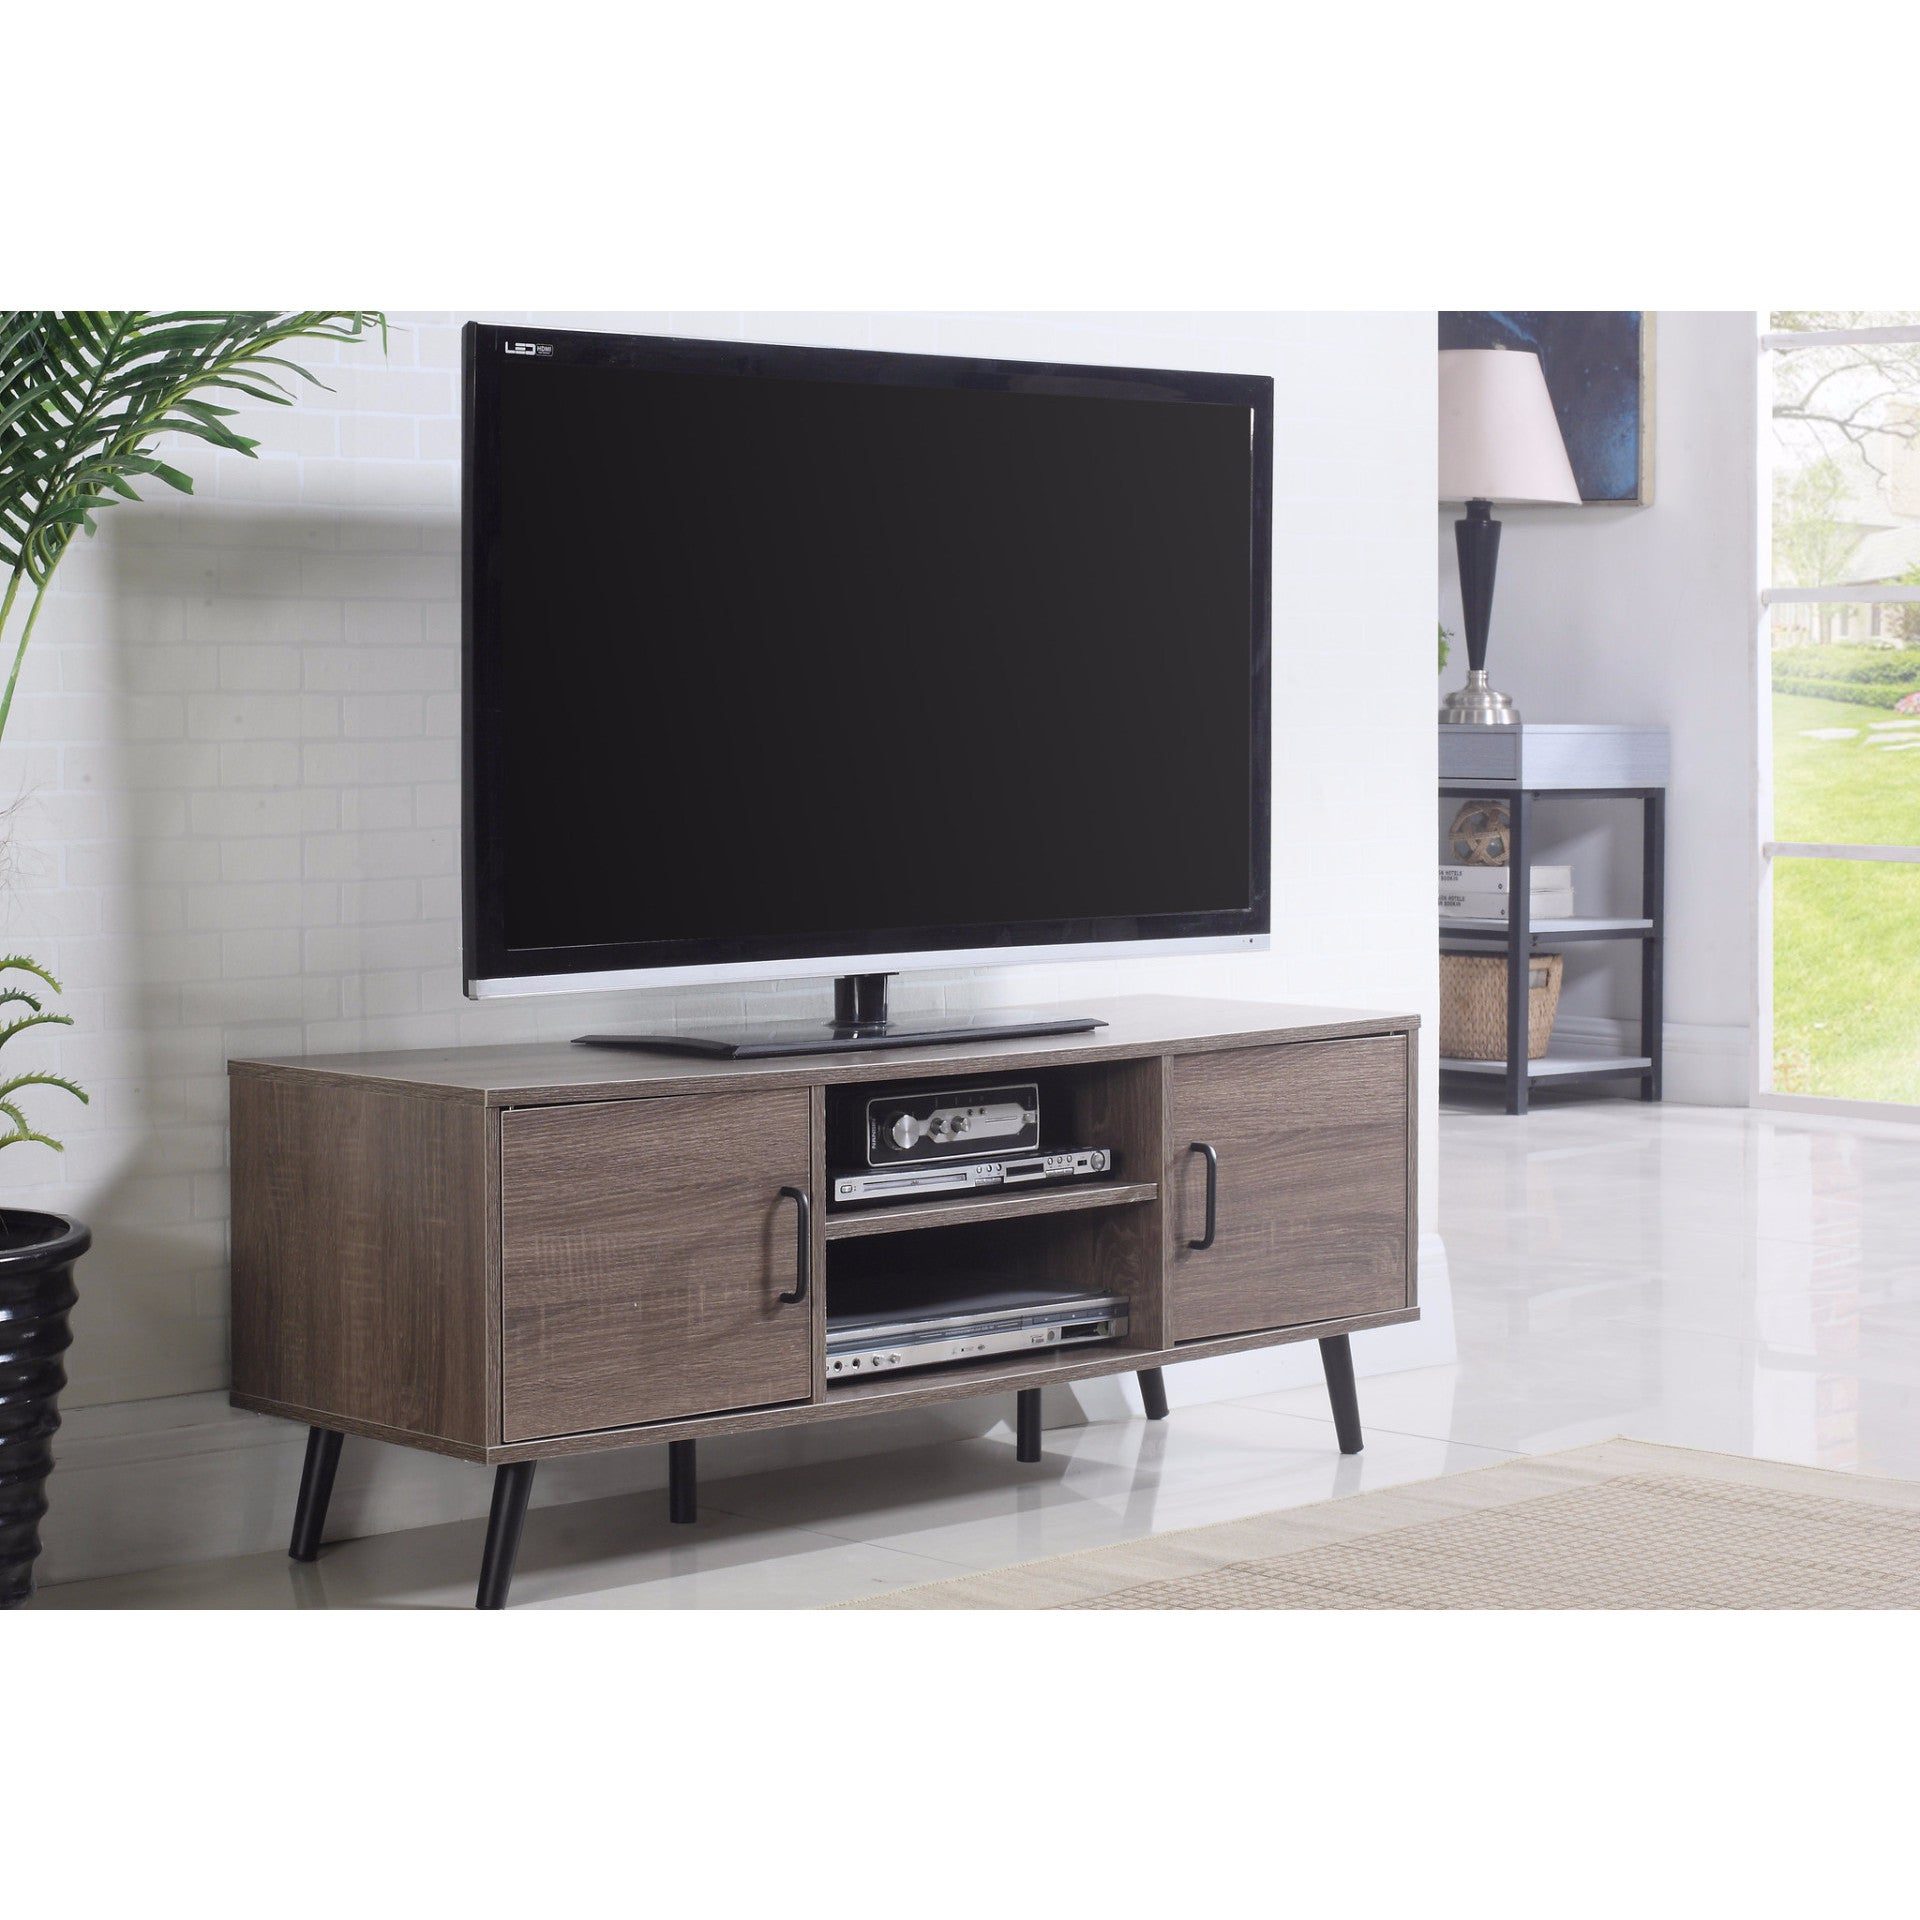 Shop mid century modern tv stand free shipping today overstock com 14074932